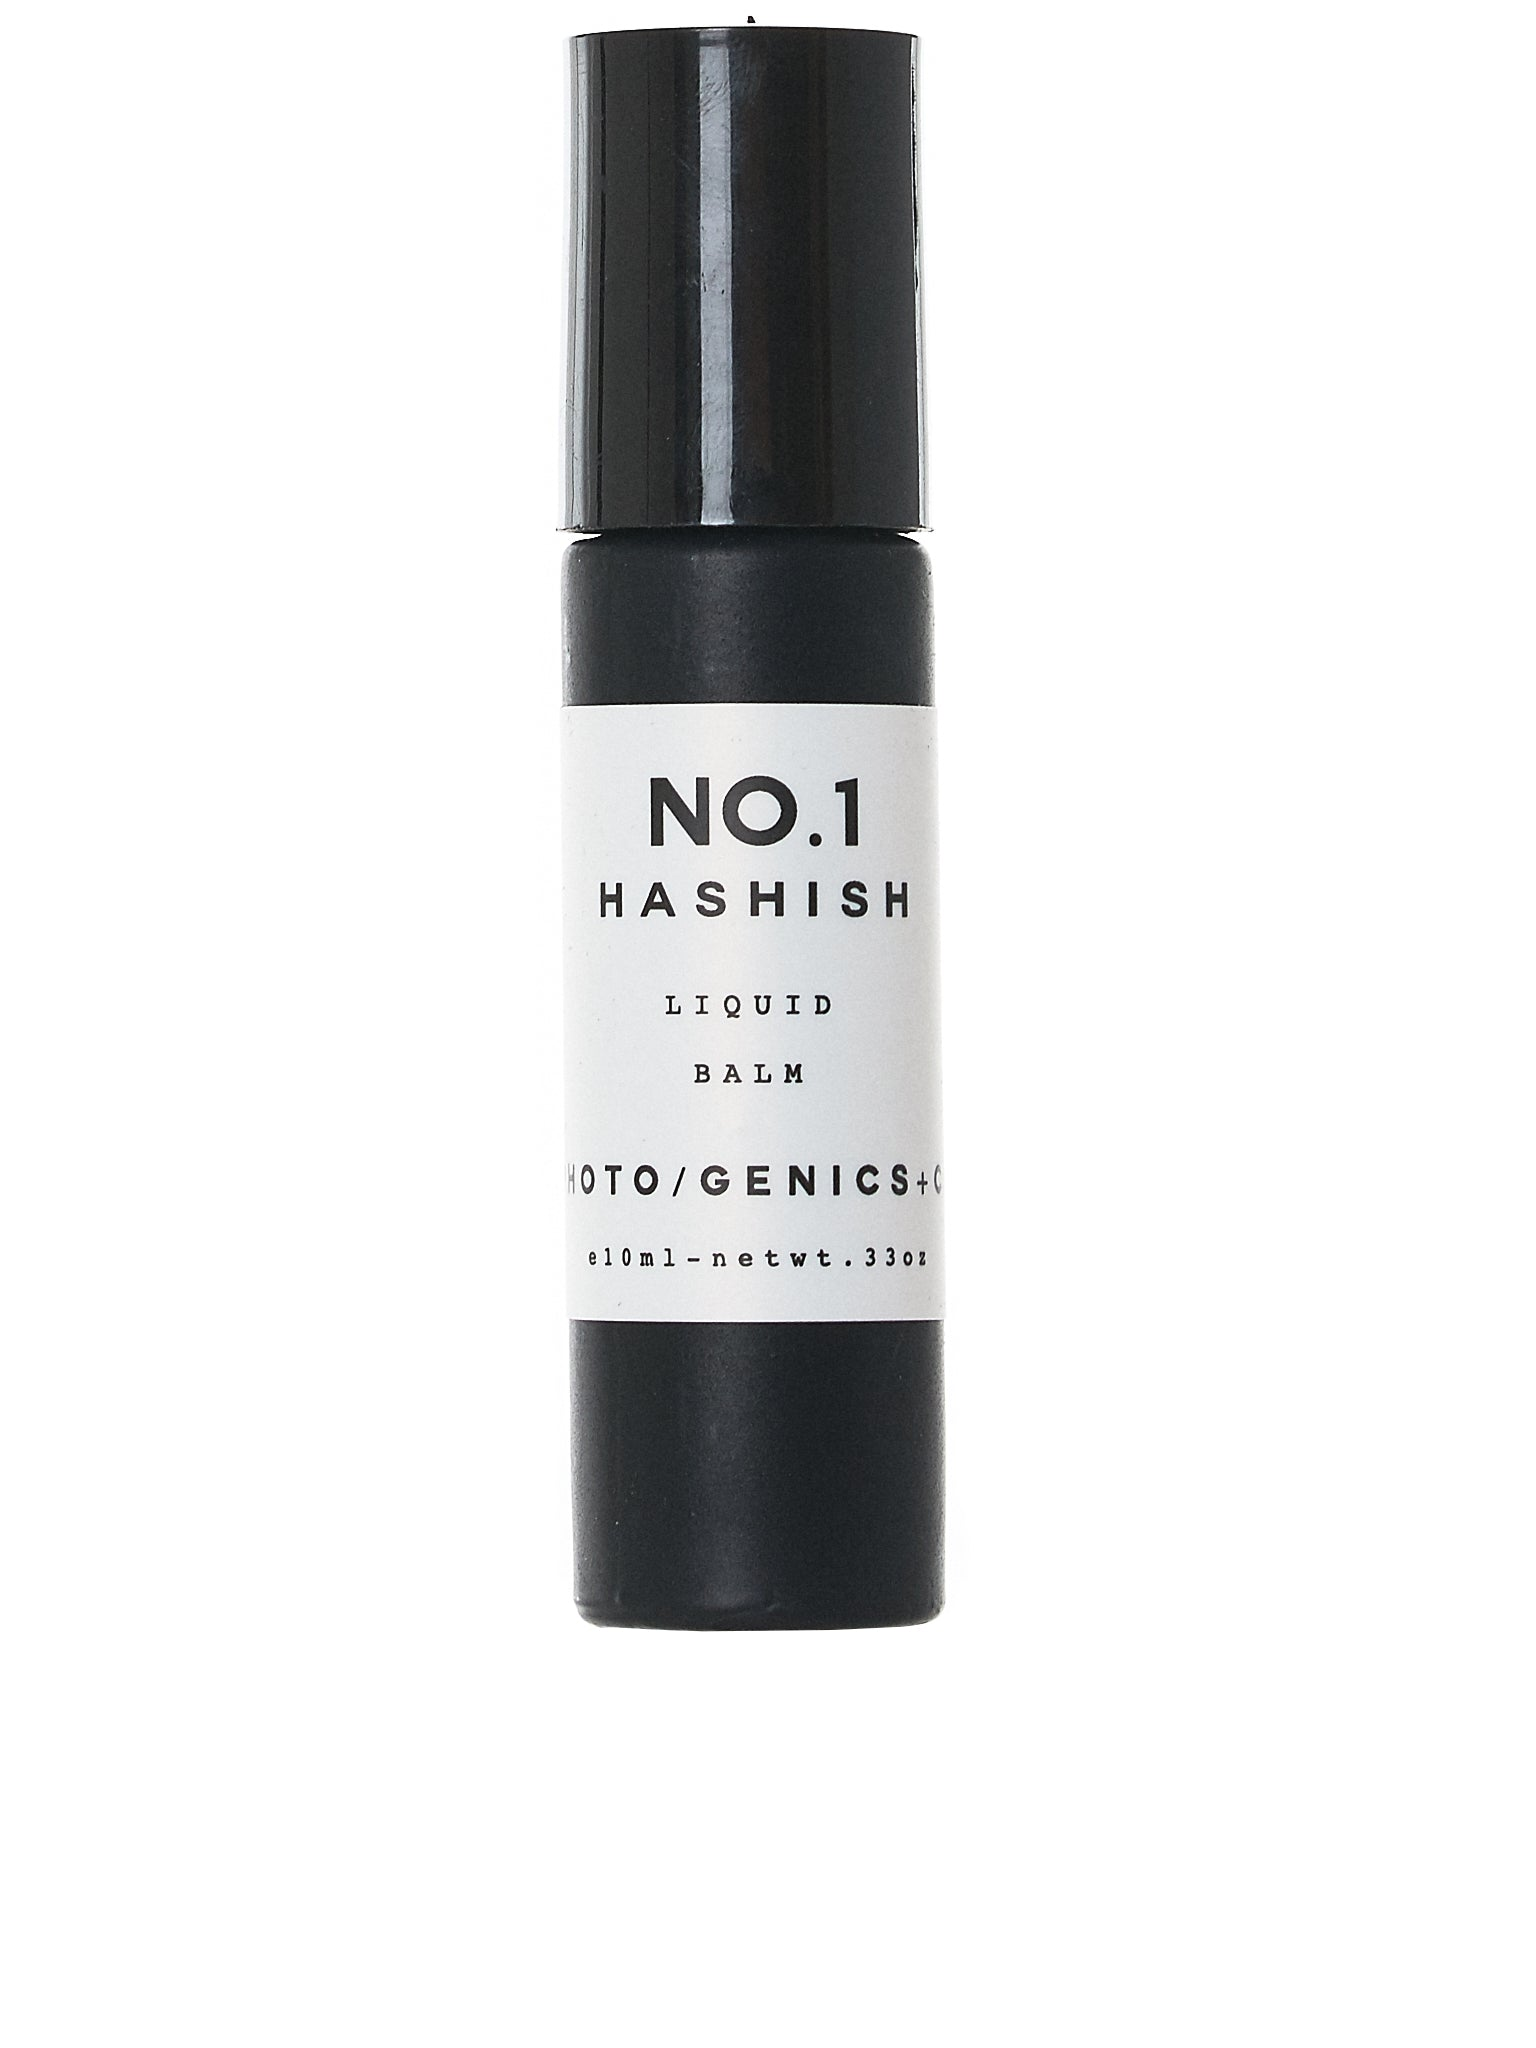 No. 2 Hashish Liquid Balm Roller Fragrance (NO-1-HASHISH-LB-G47)